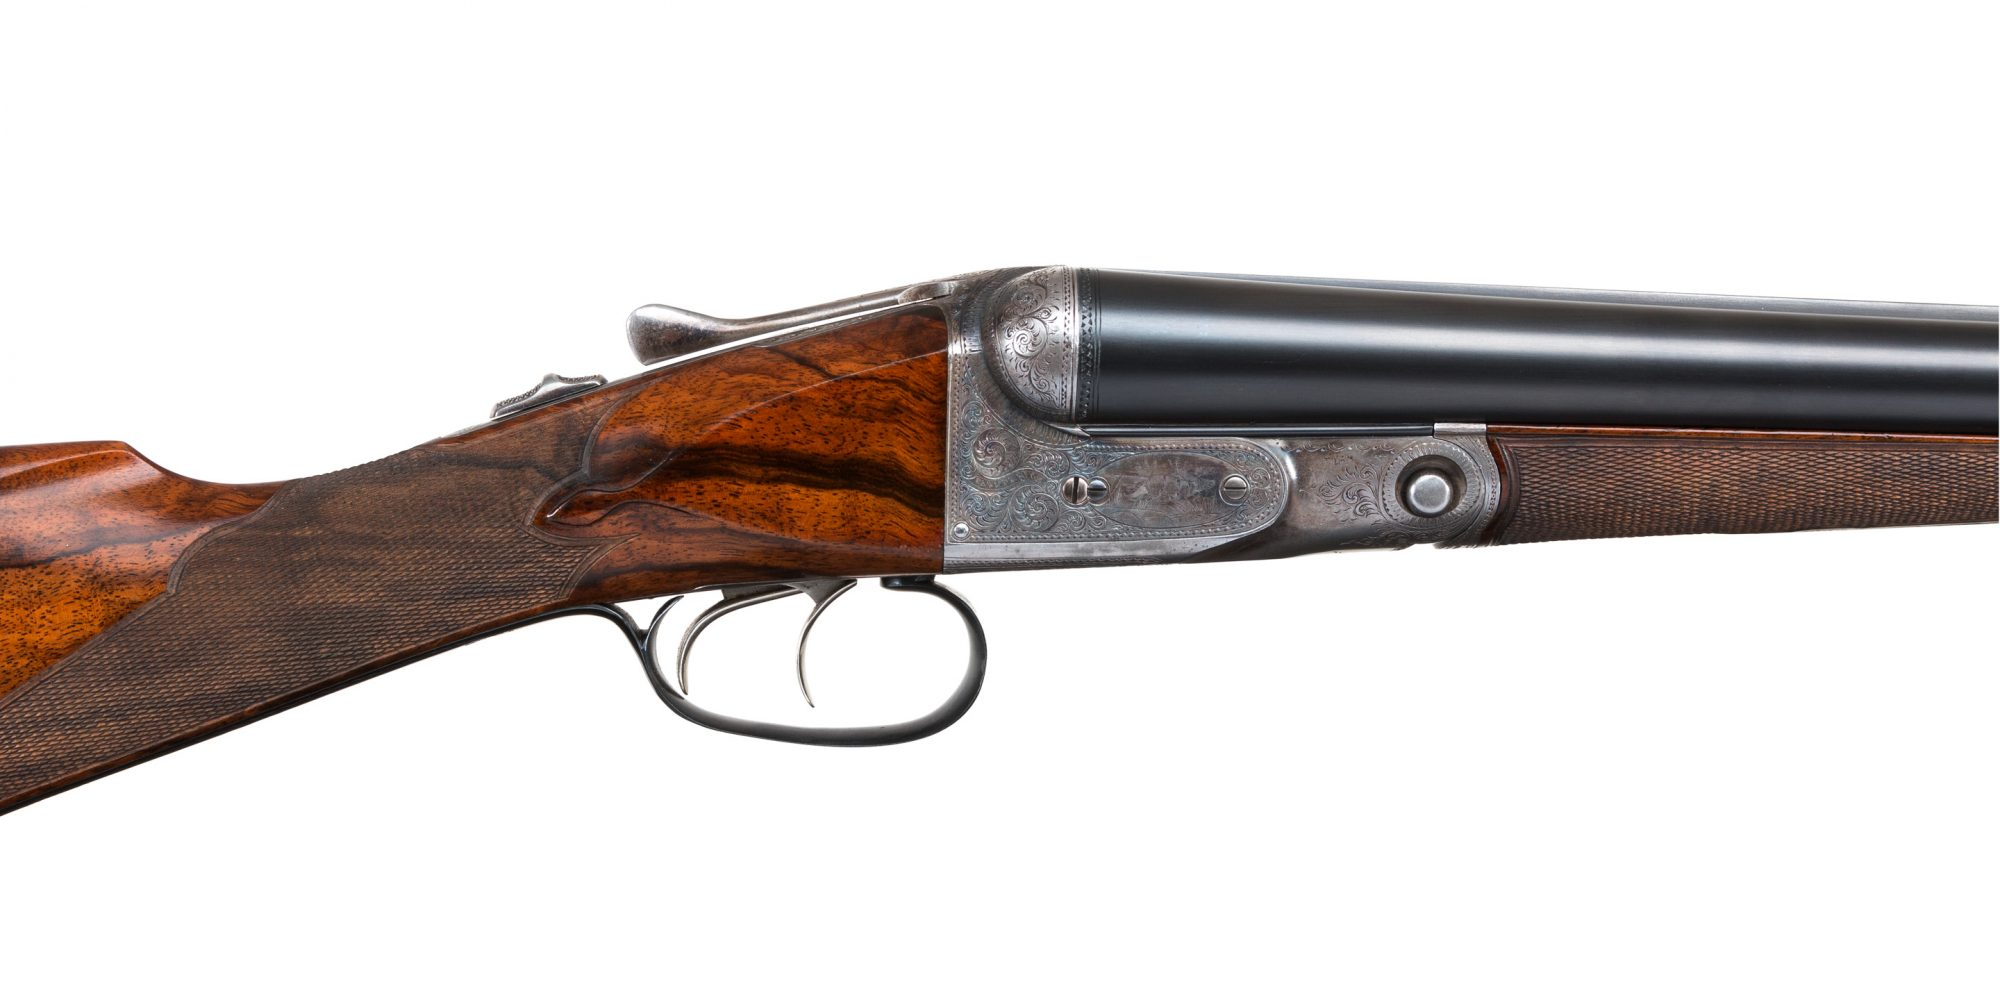 Photo of a pre-owned Parker CHE 12 gauge double, for sale as-is by Turnbull Restoration of Bloomfield, NY